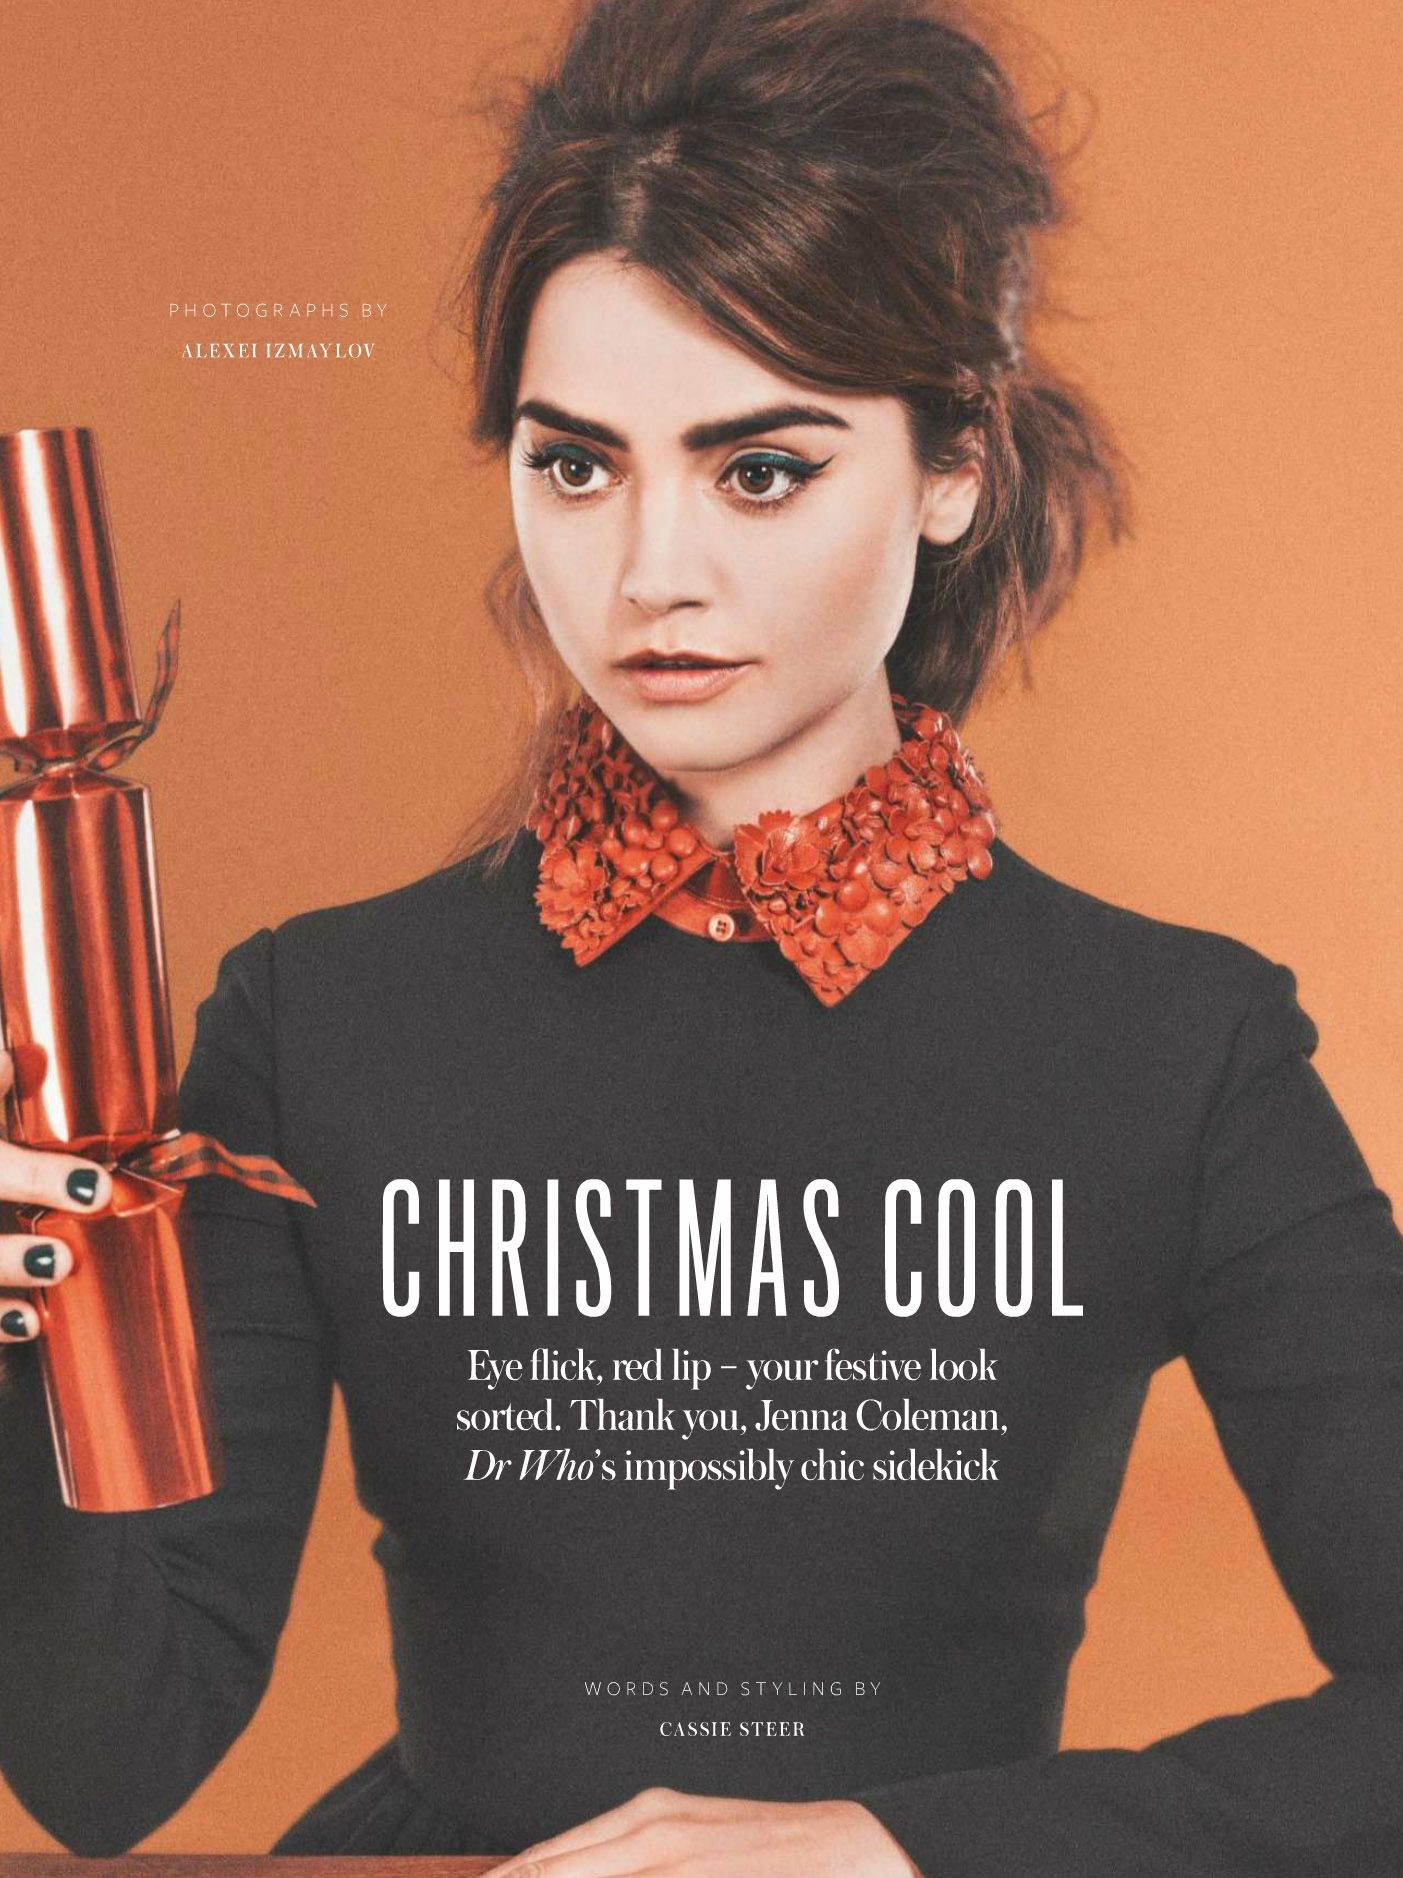 Jenna Coleman for InStyle Magazine, December 2014